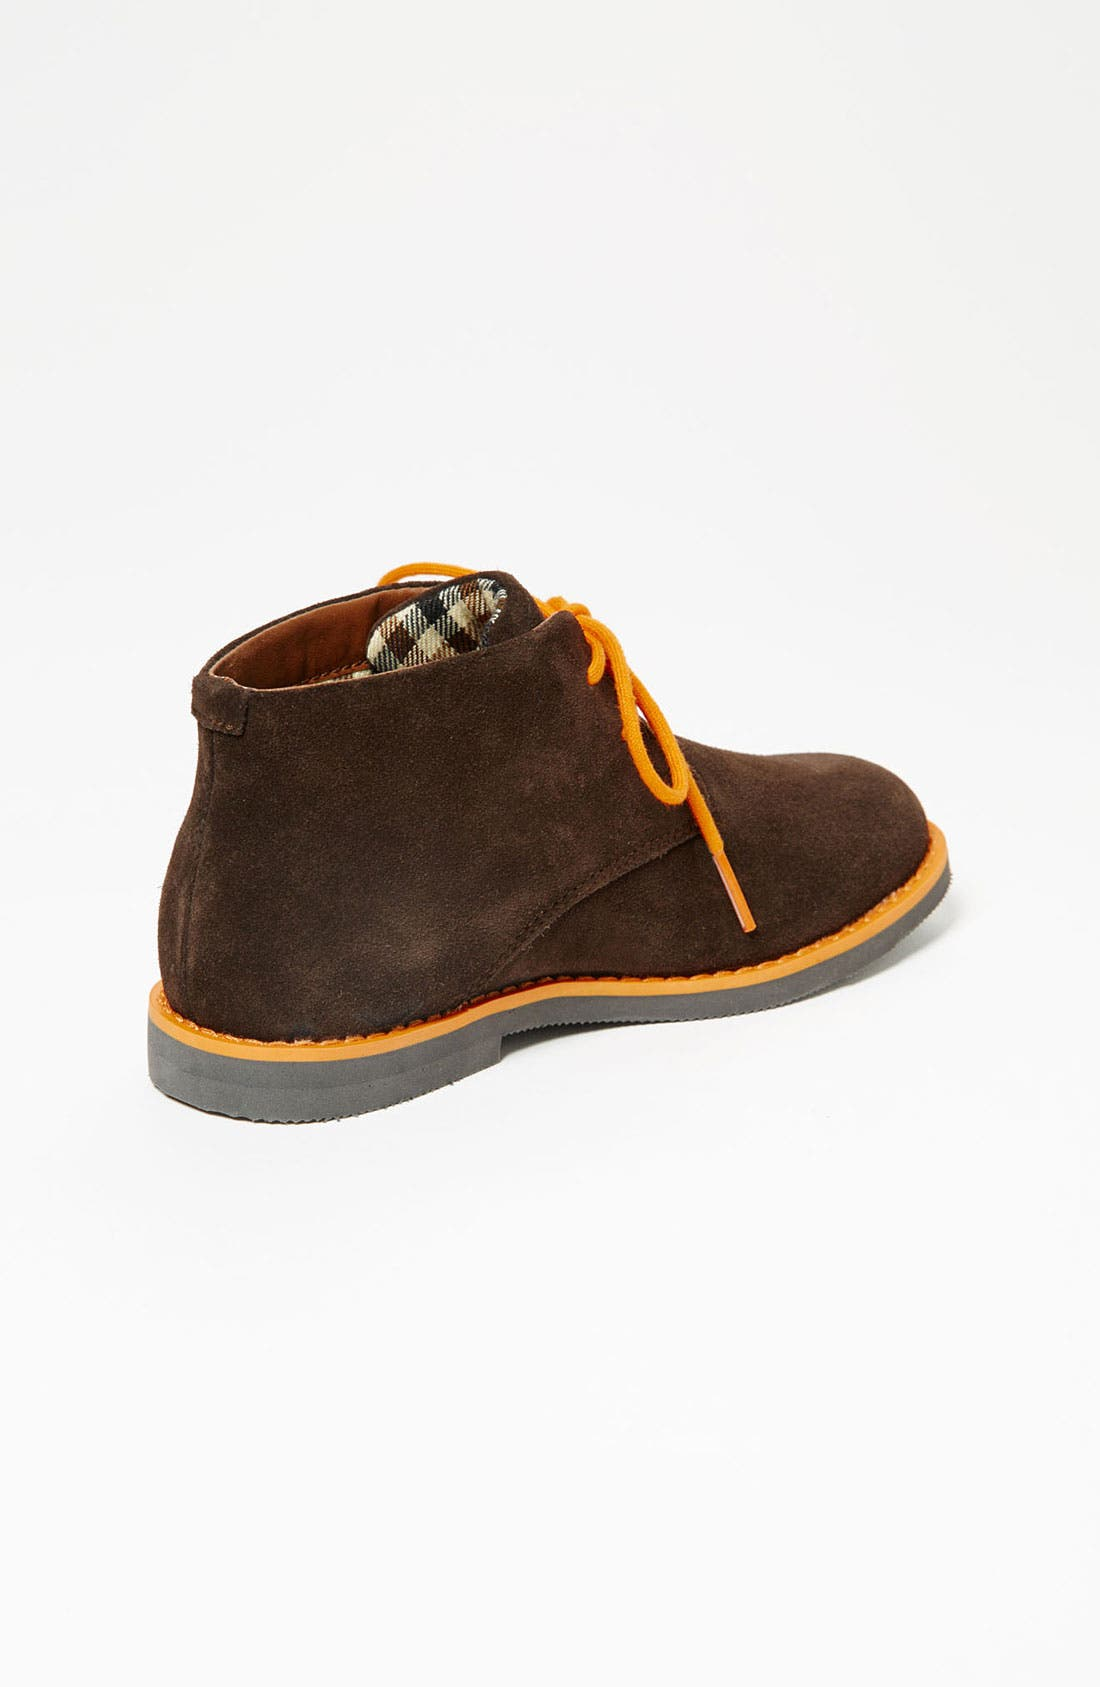 Alternate Image 2  - Florsheim 'Doon' Chukka Boot (Little Kid & Big Kid)